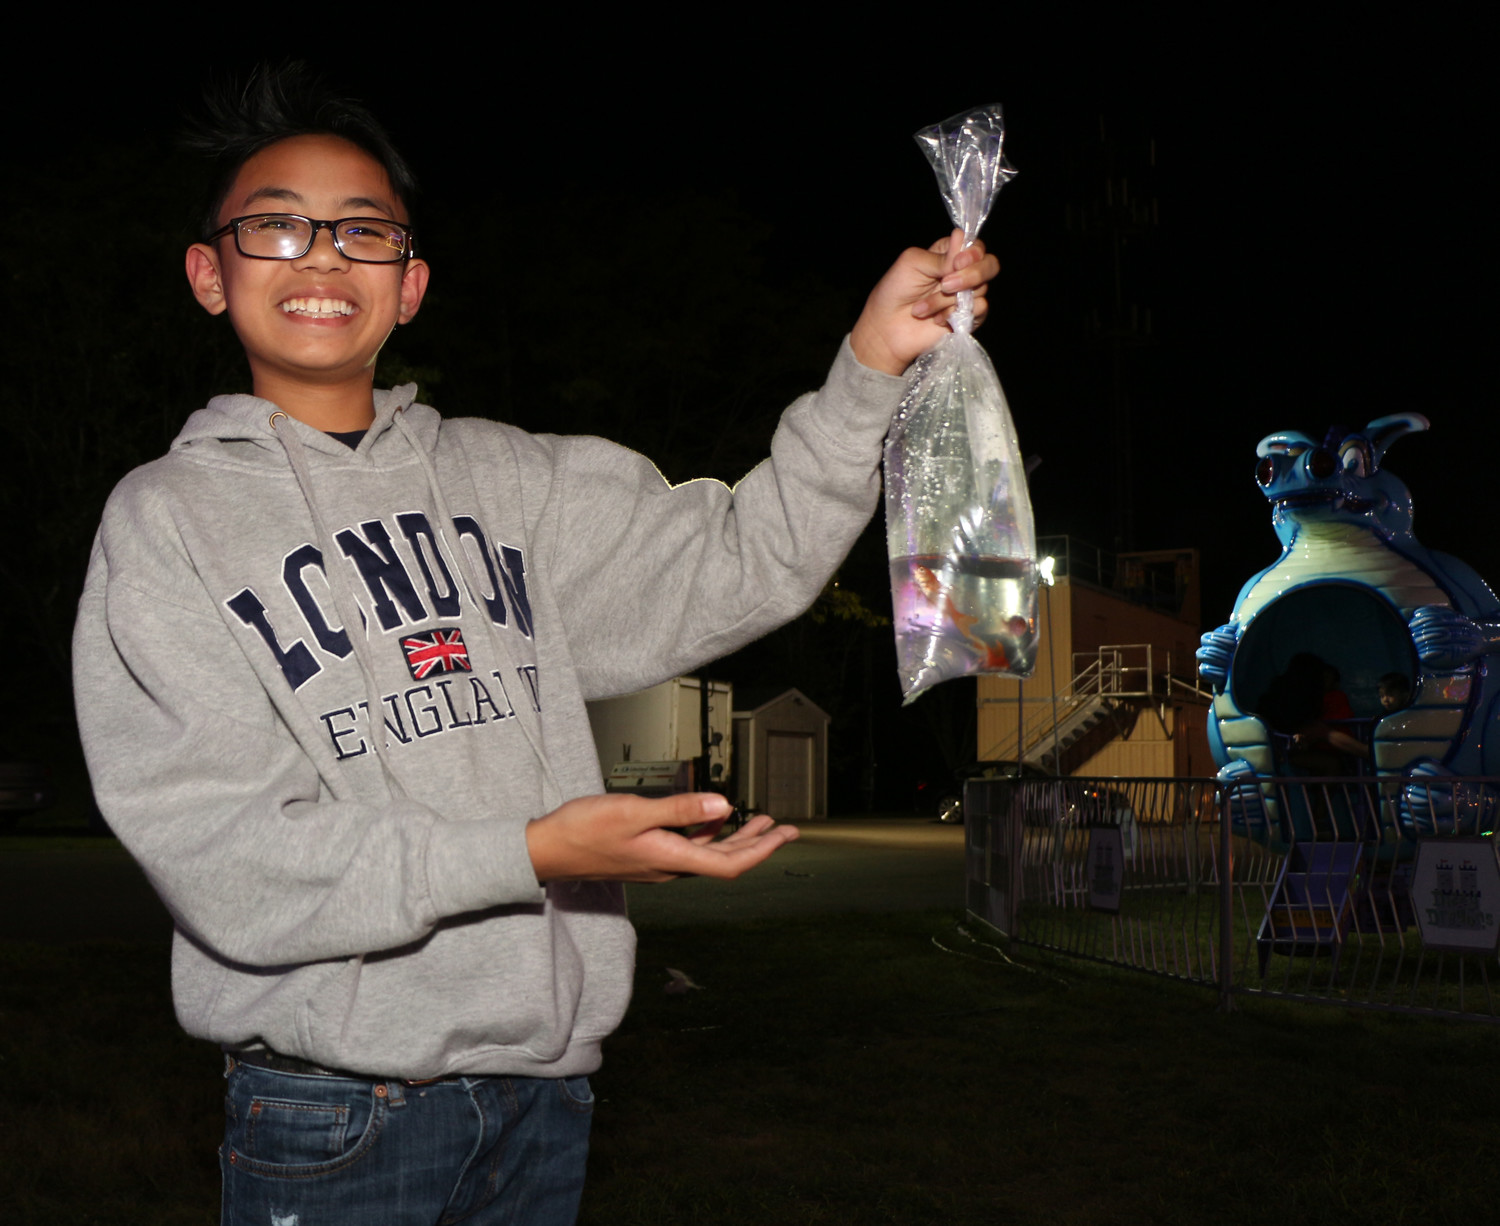 Jharrel Berardo carries a few goldfish to take home as pets.